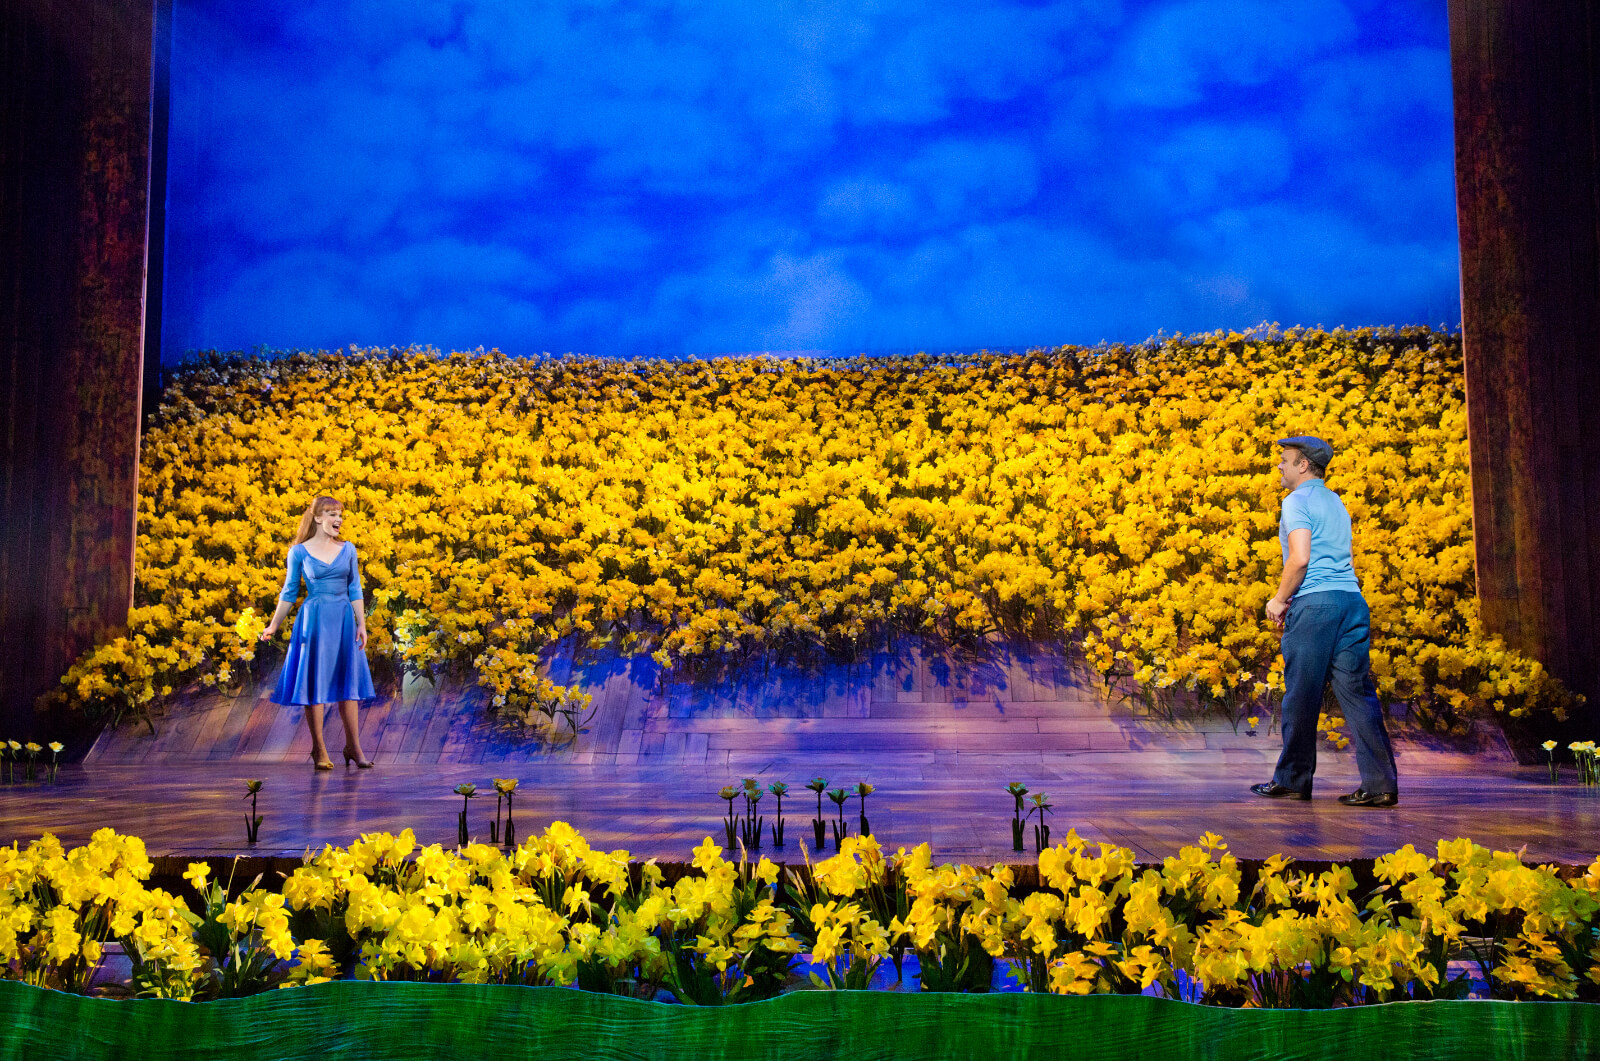 Sandra (Kate Baldwin) and Edward Bloom (Norbert Leo Butz) look at each other across a field of daffodils